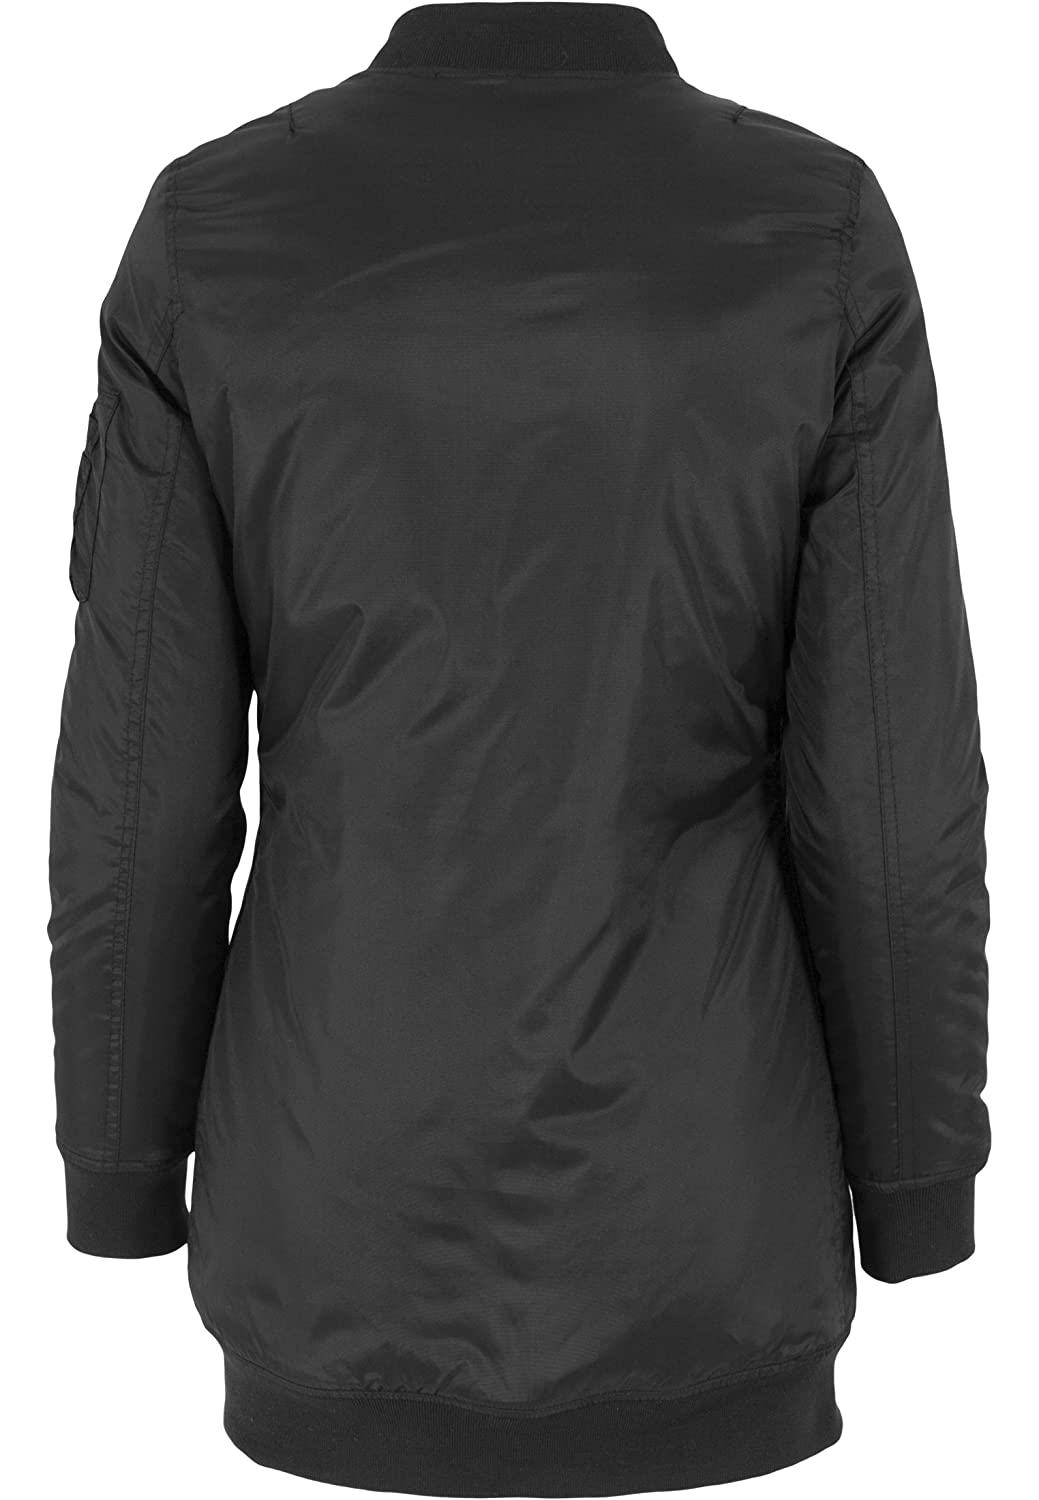 a7d5f0fb7 Urban Classics TB1092 Ladies Long Bomber Jacket Giacca Donna Streetwear